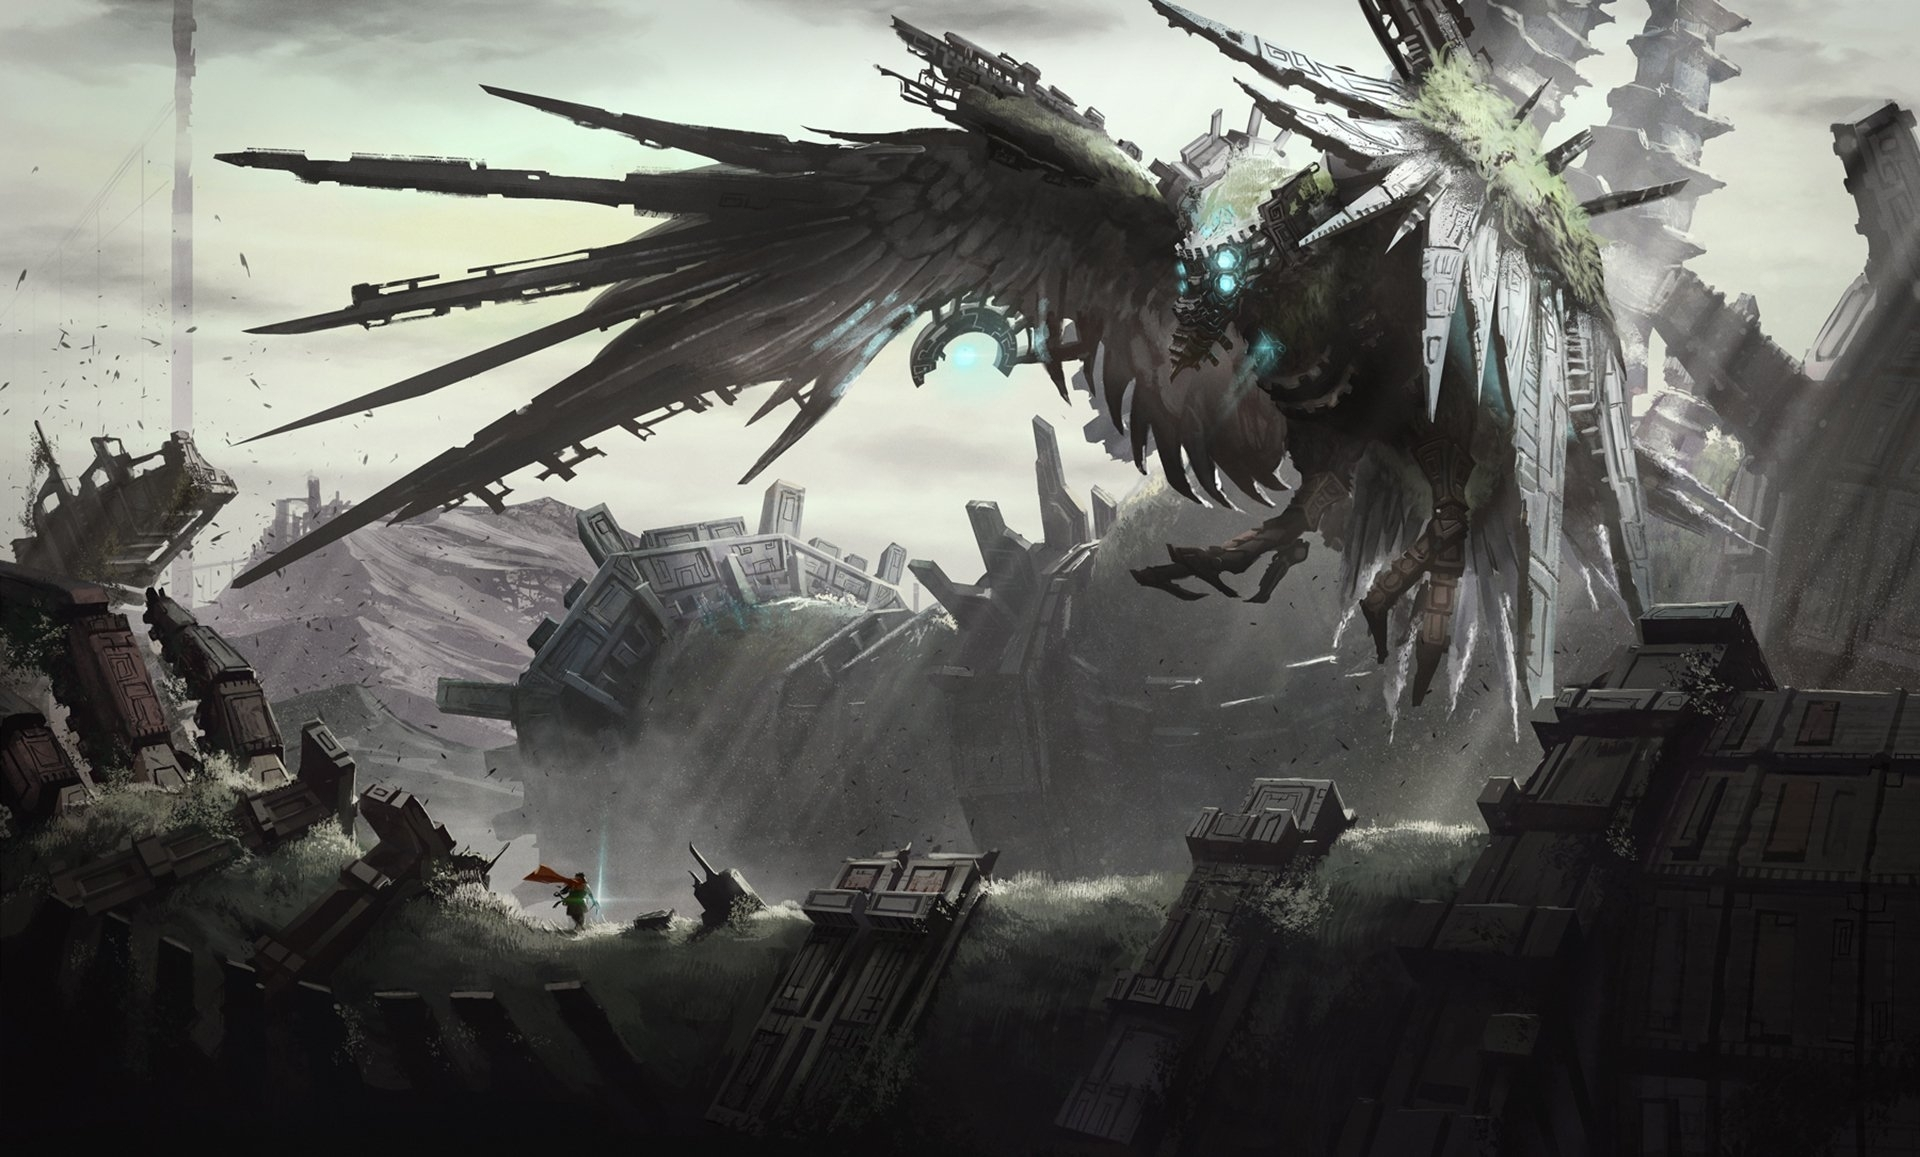 76 shadow of the colossus hd wallpapers | background images